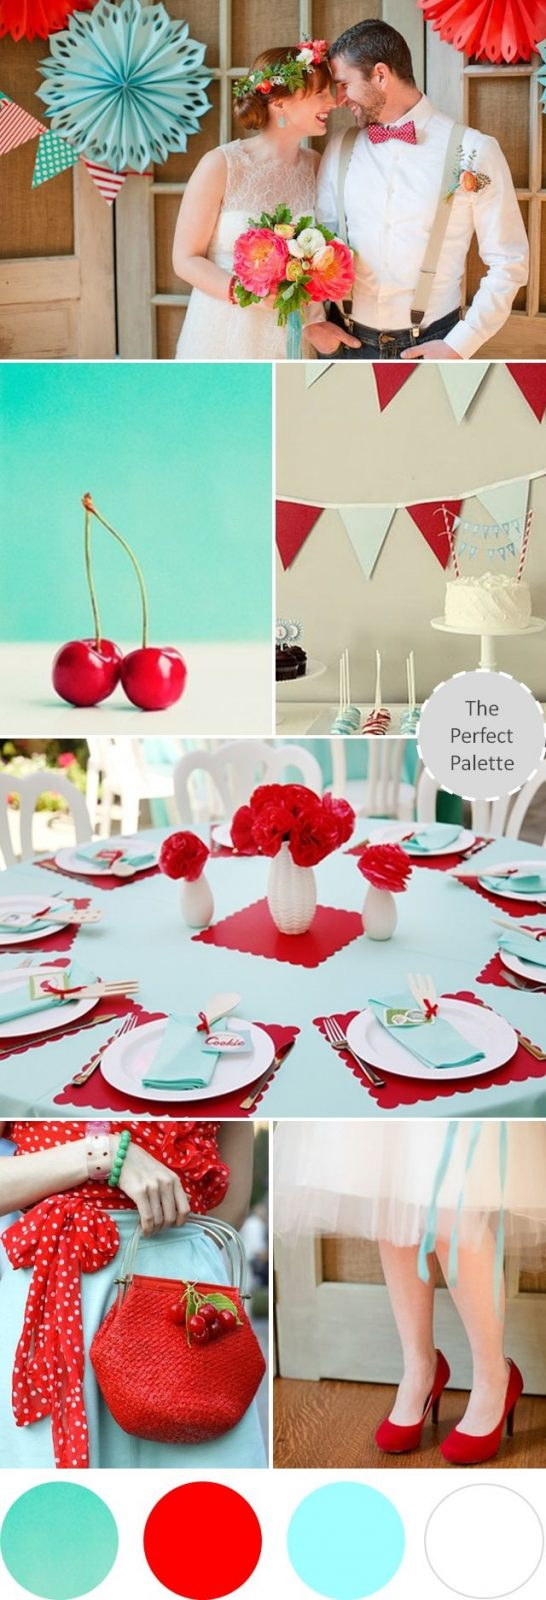 Wedding_colour_scheme